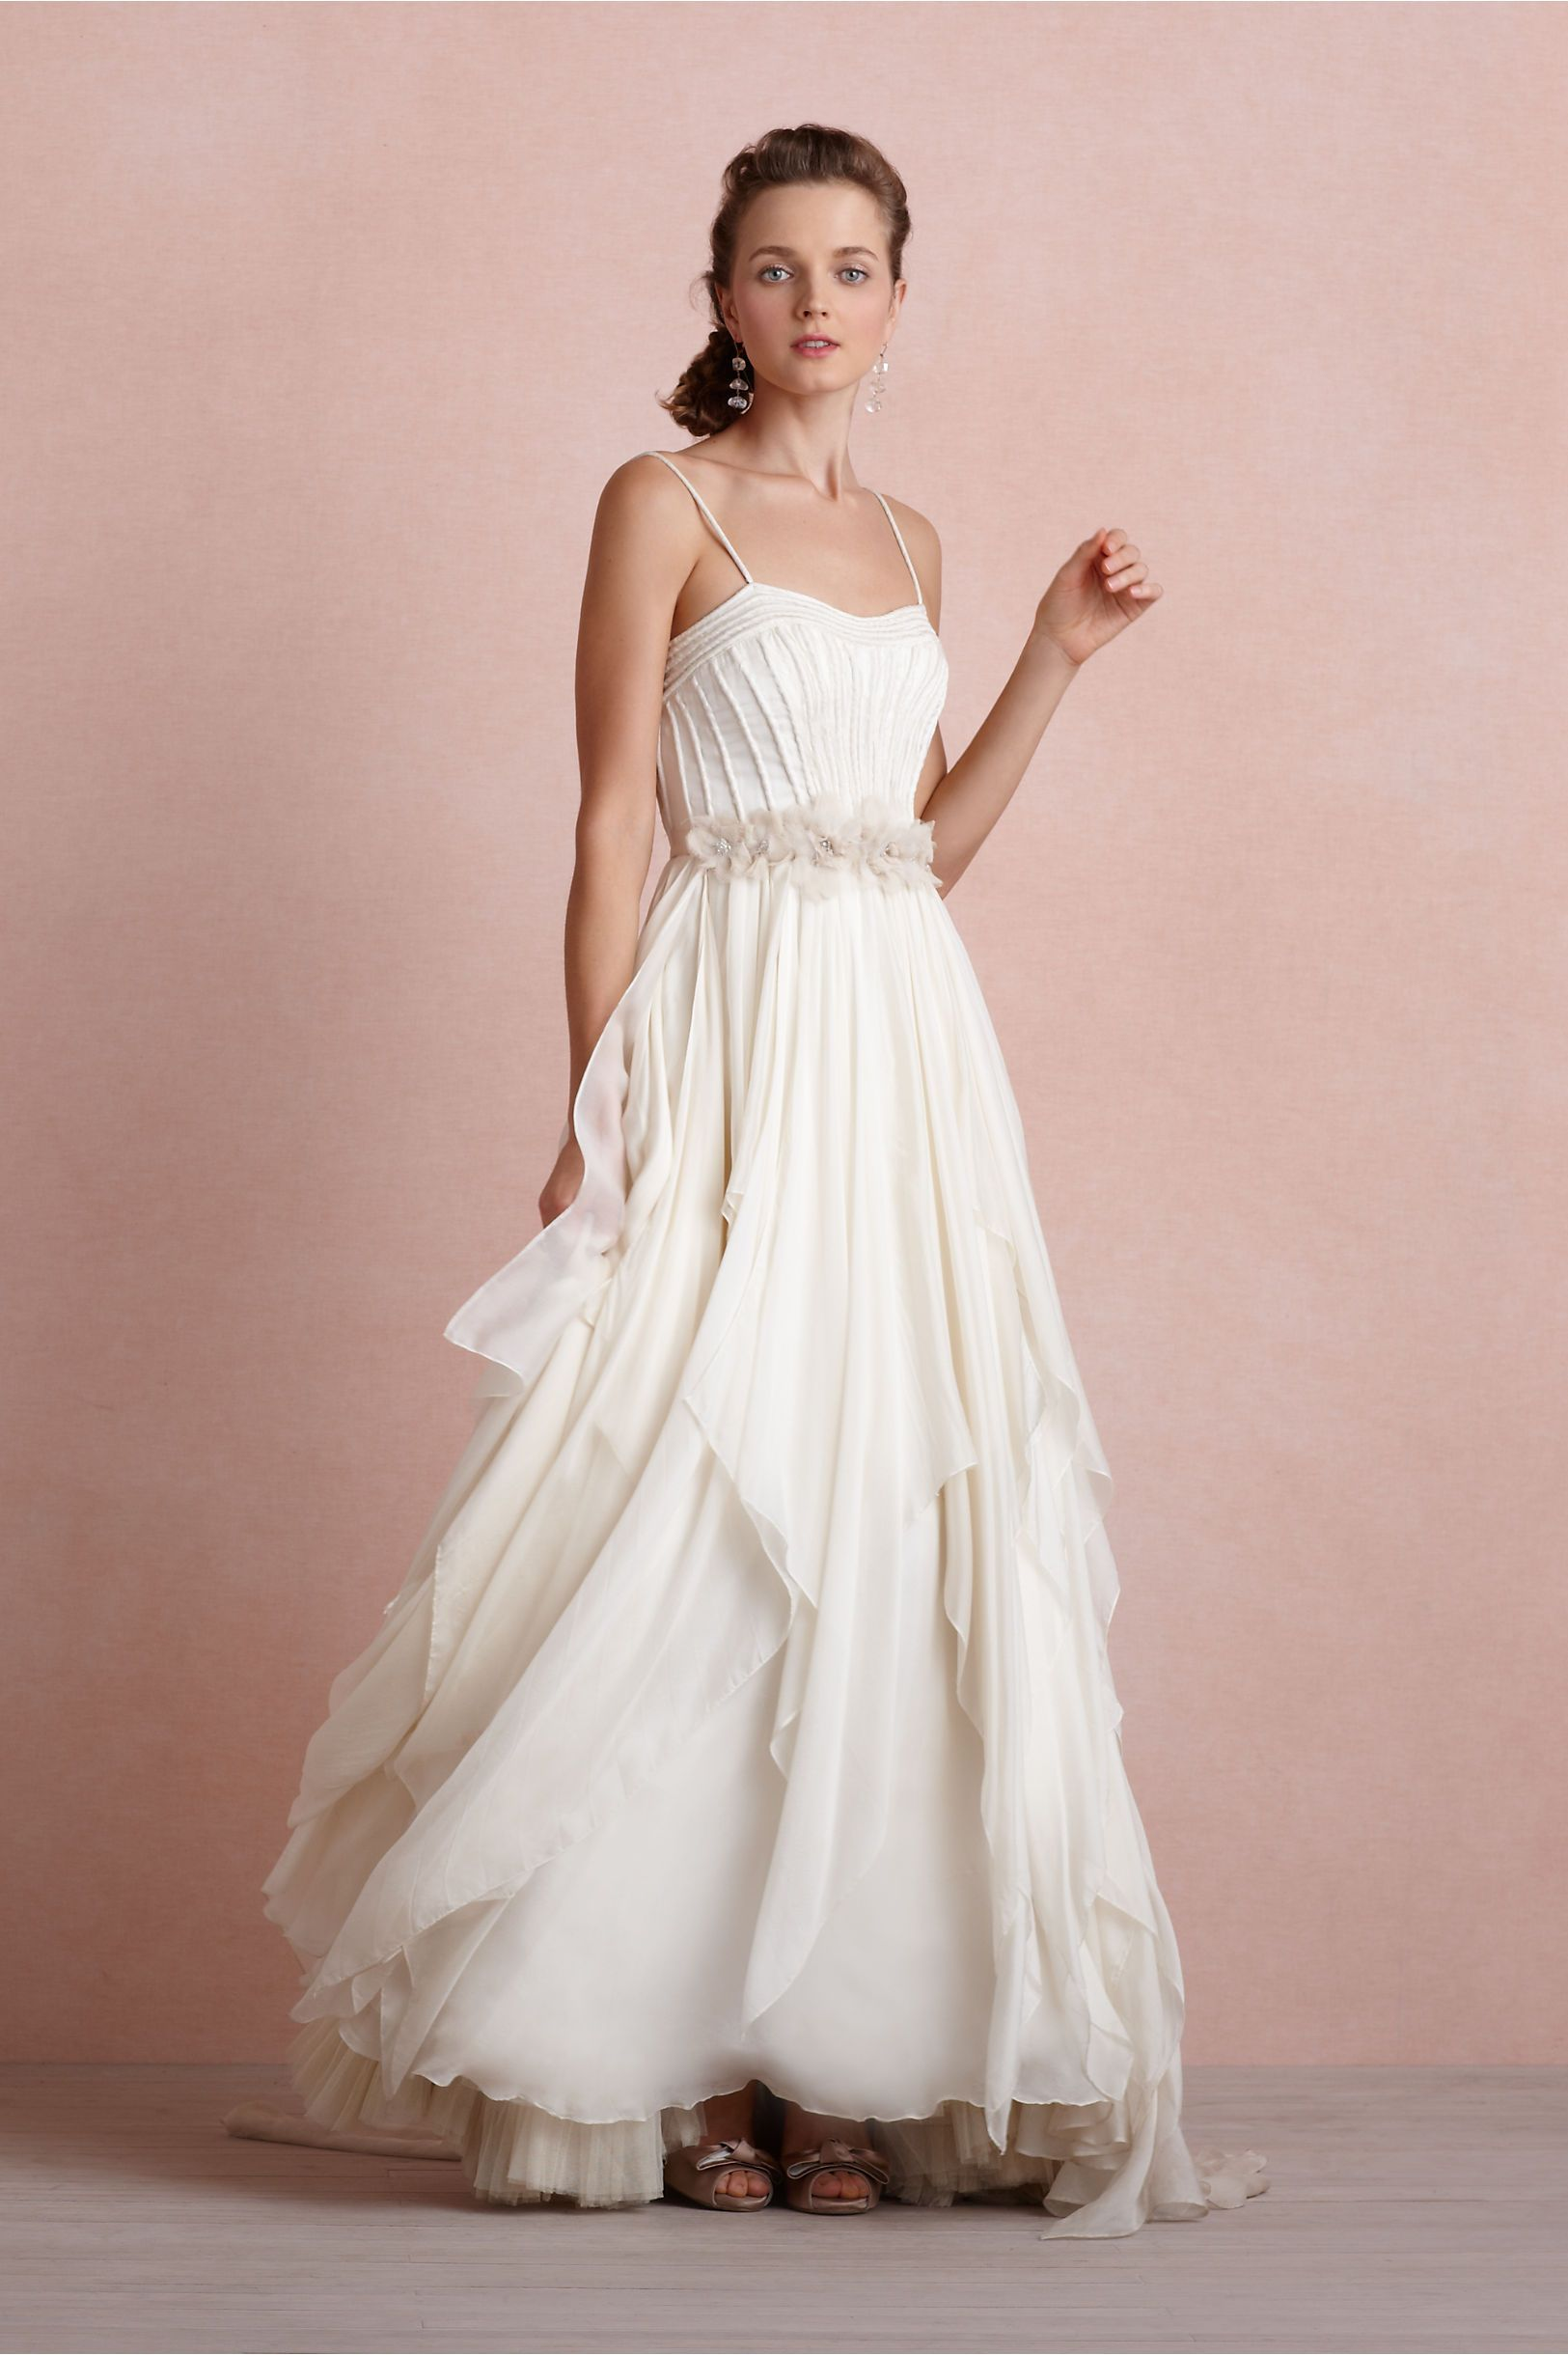 Buy and Sell BHLDN Used and Preowned Wedding Dresses - oukas.info